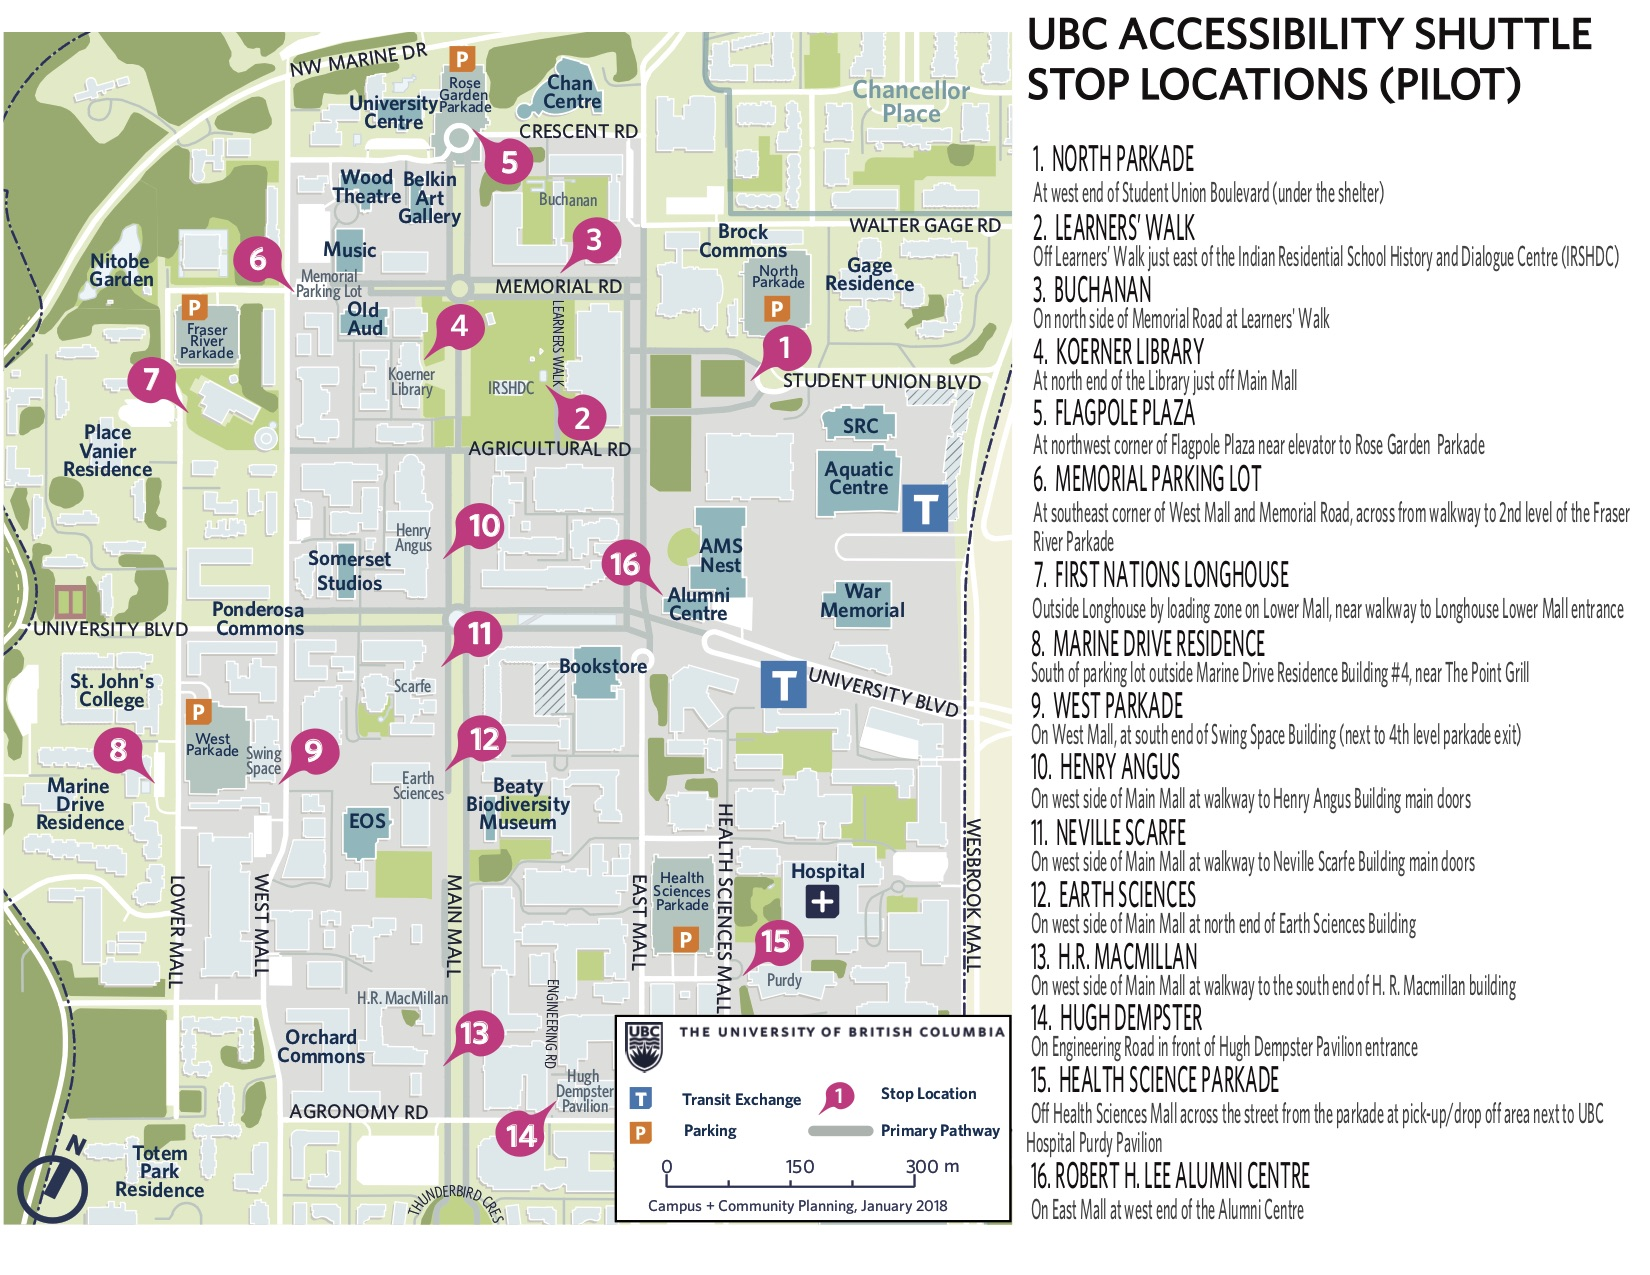 Stop Locations accessibility shuttle